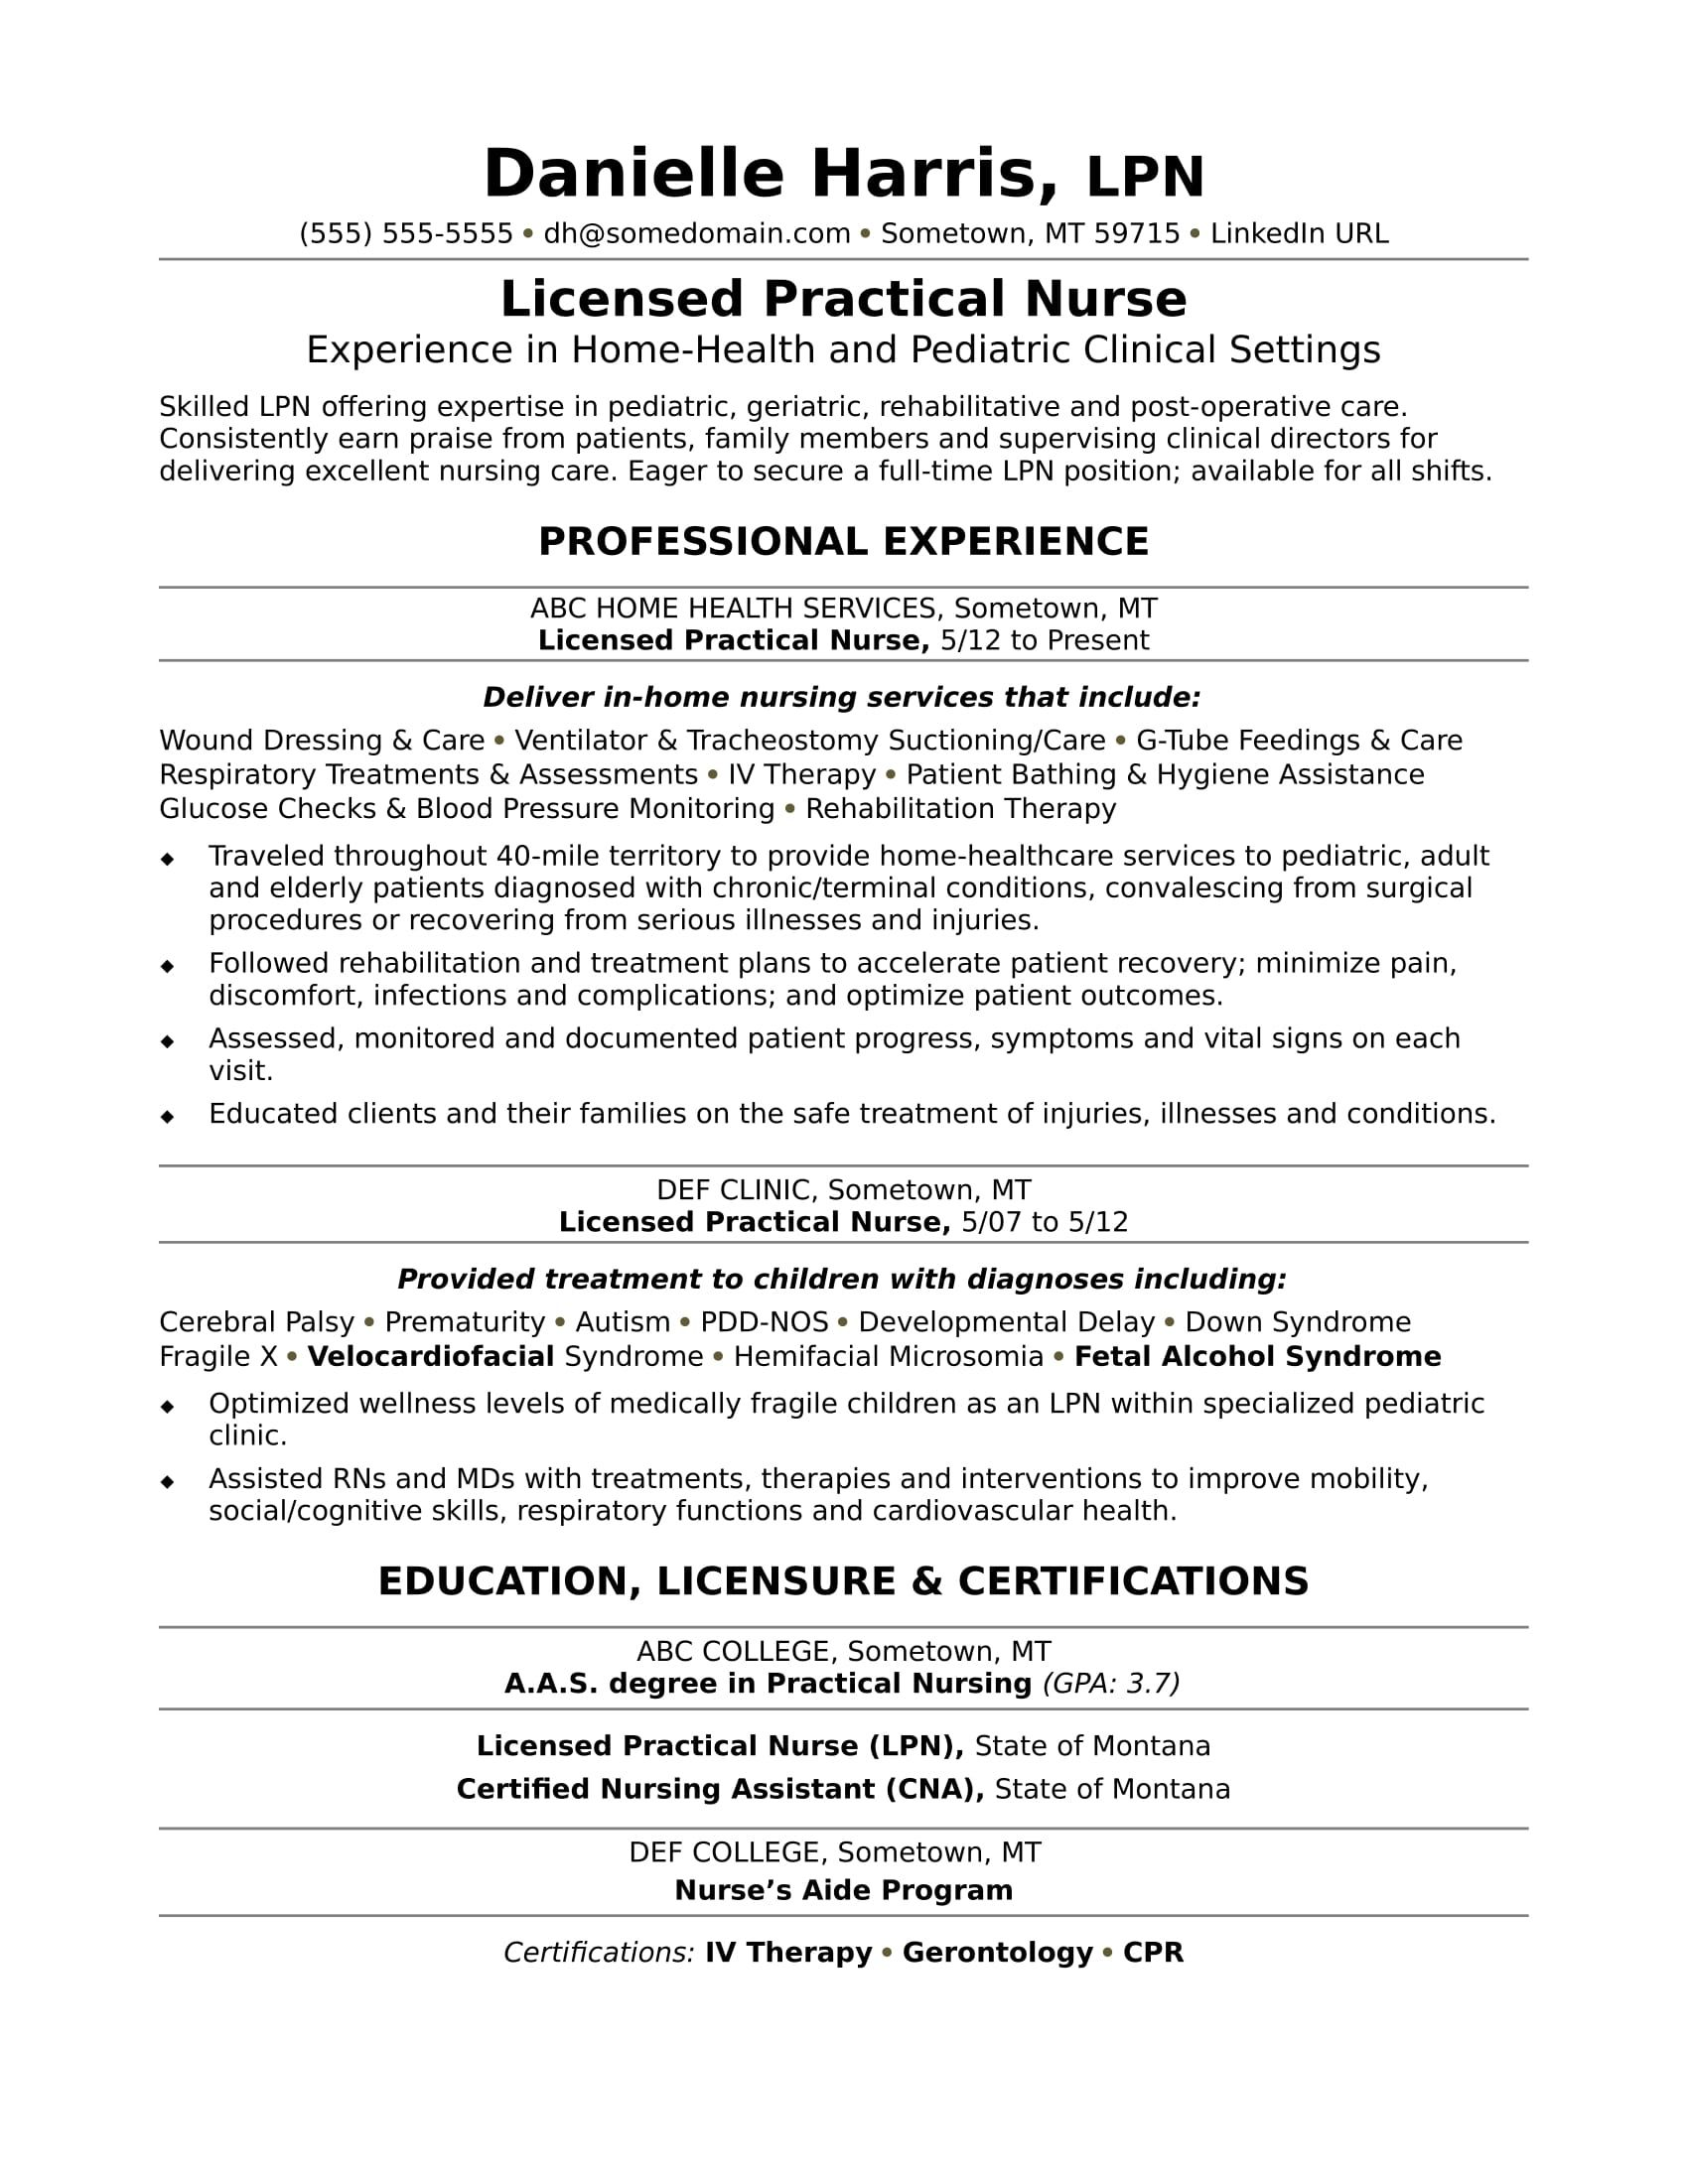 Need To Revive Your Licensed Practical Nurse Resume Check Out This Sample Lpn Resume For A For Inspiration Nursing Resume Examples New Grad Nursing Resume Nursing Resume Template